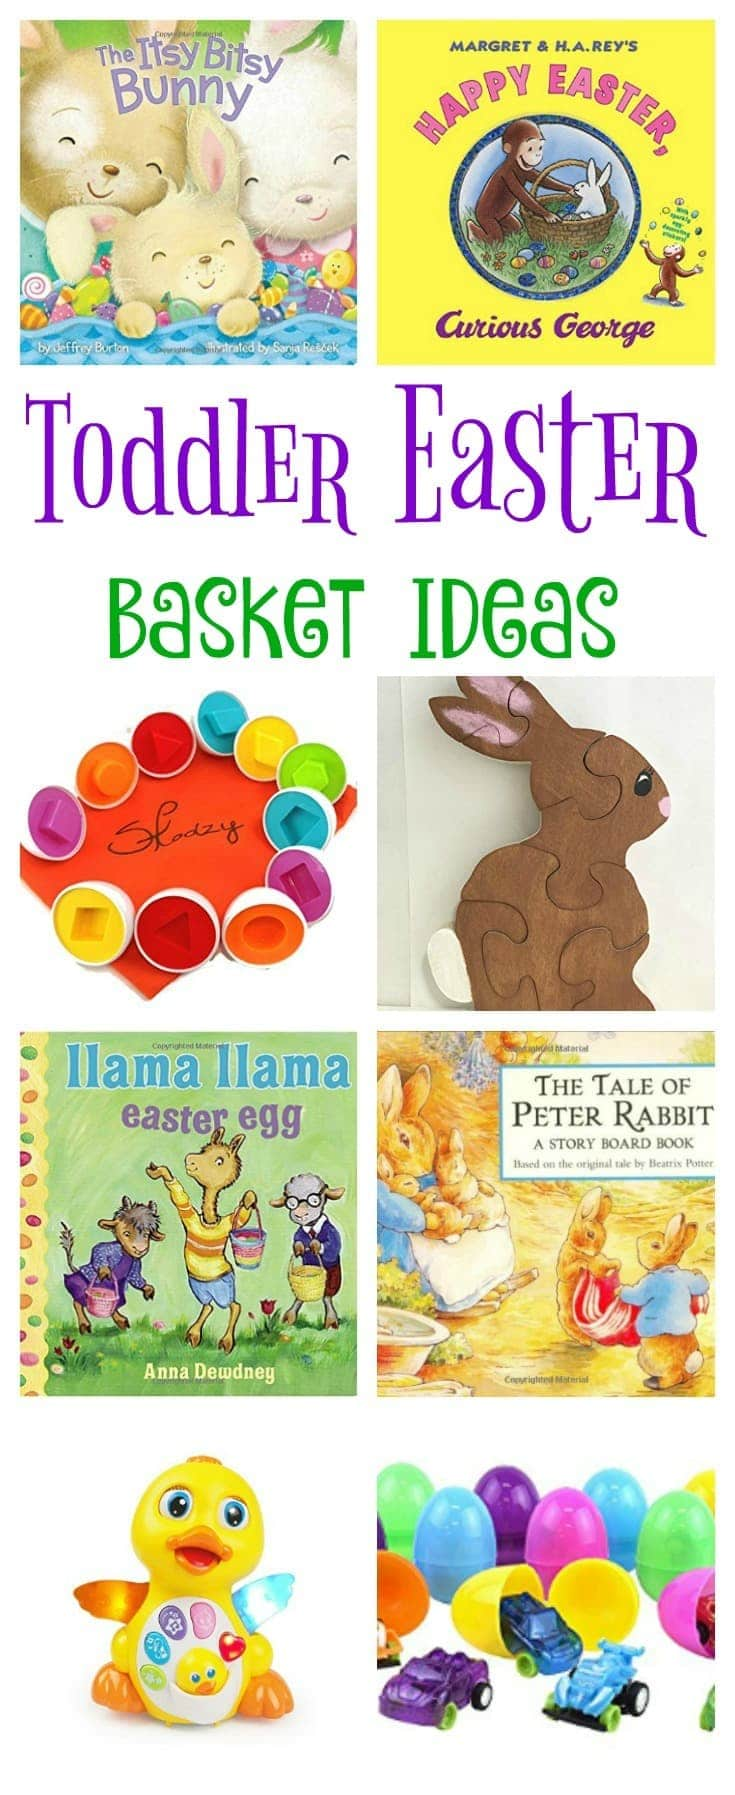 This is a great collection of toddler Easter basket ideas (with links directly to the items so you can fill your child's basket from home!). Lots of other ideas too for making Easter a fun and magical holiday for toddlers.